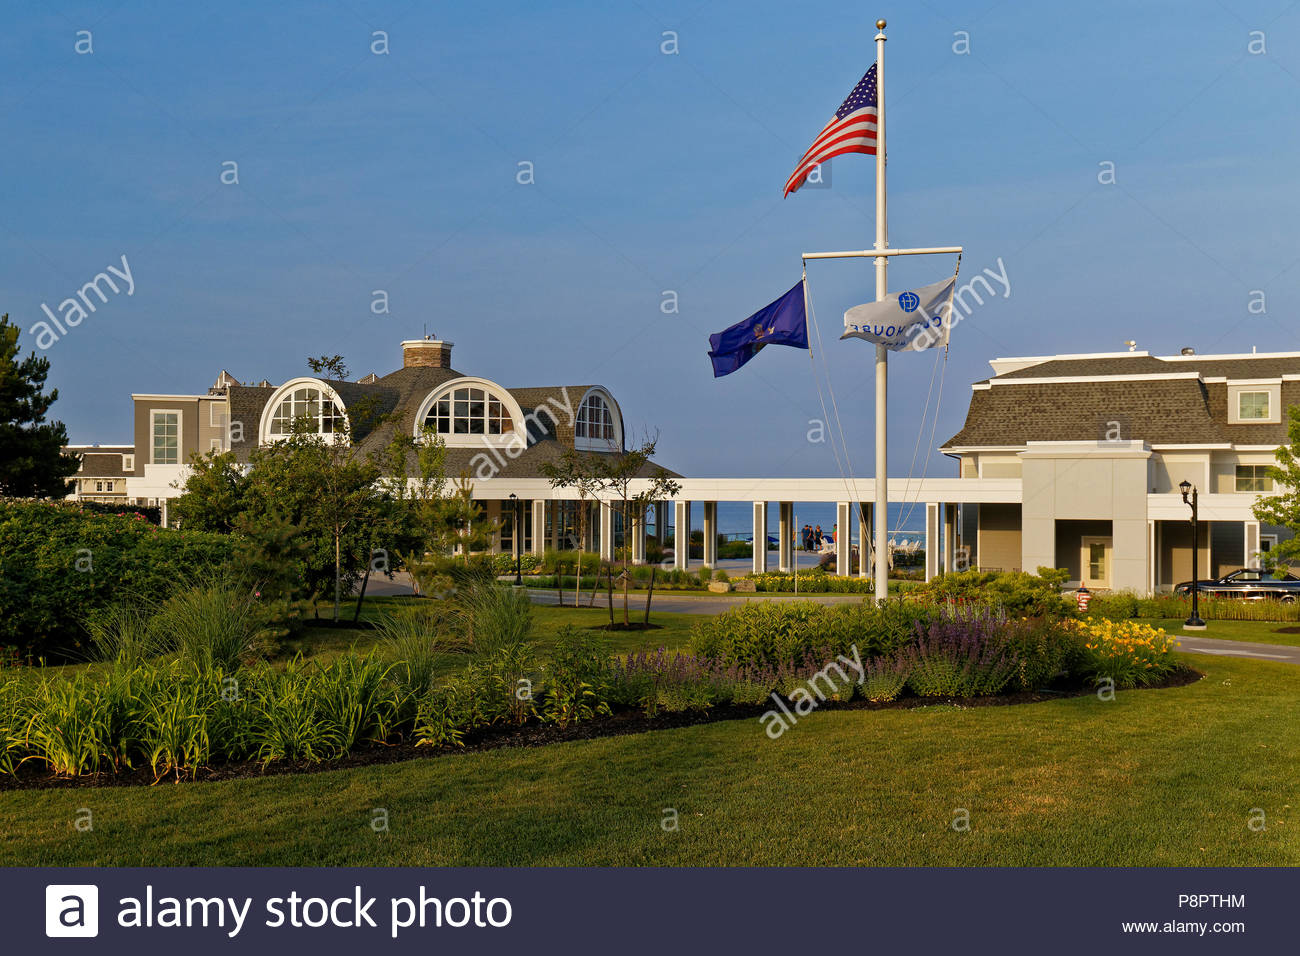 York County Stock Photos & York County Stock Images - Alamy